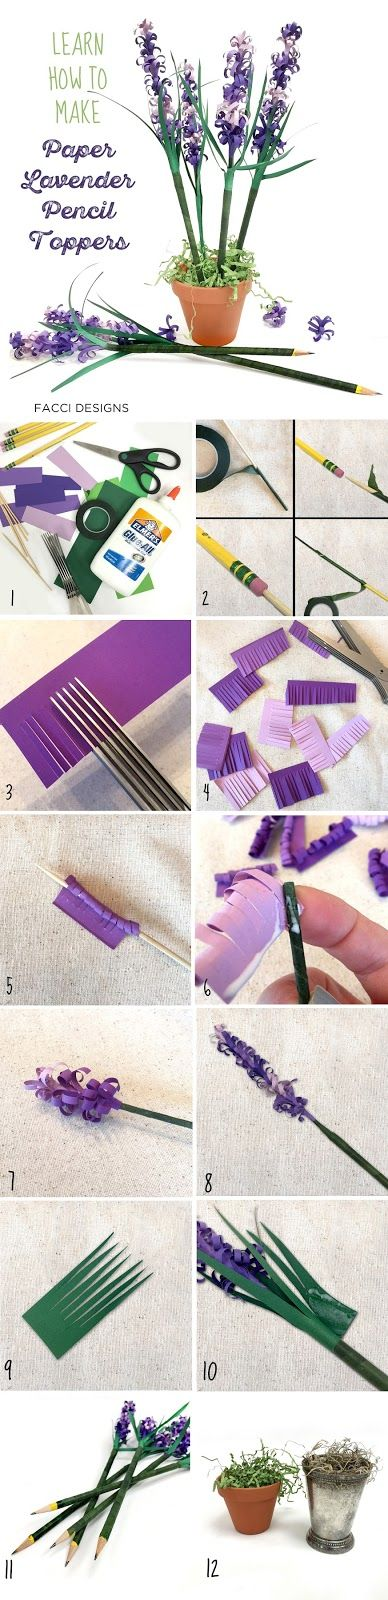 Facci Designs Learn how to make Paper Lavender Pencil Toppers